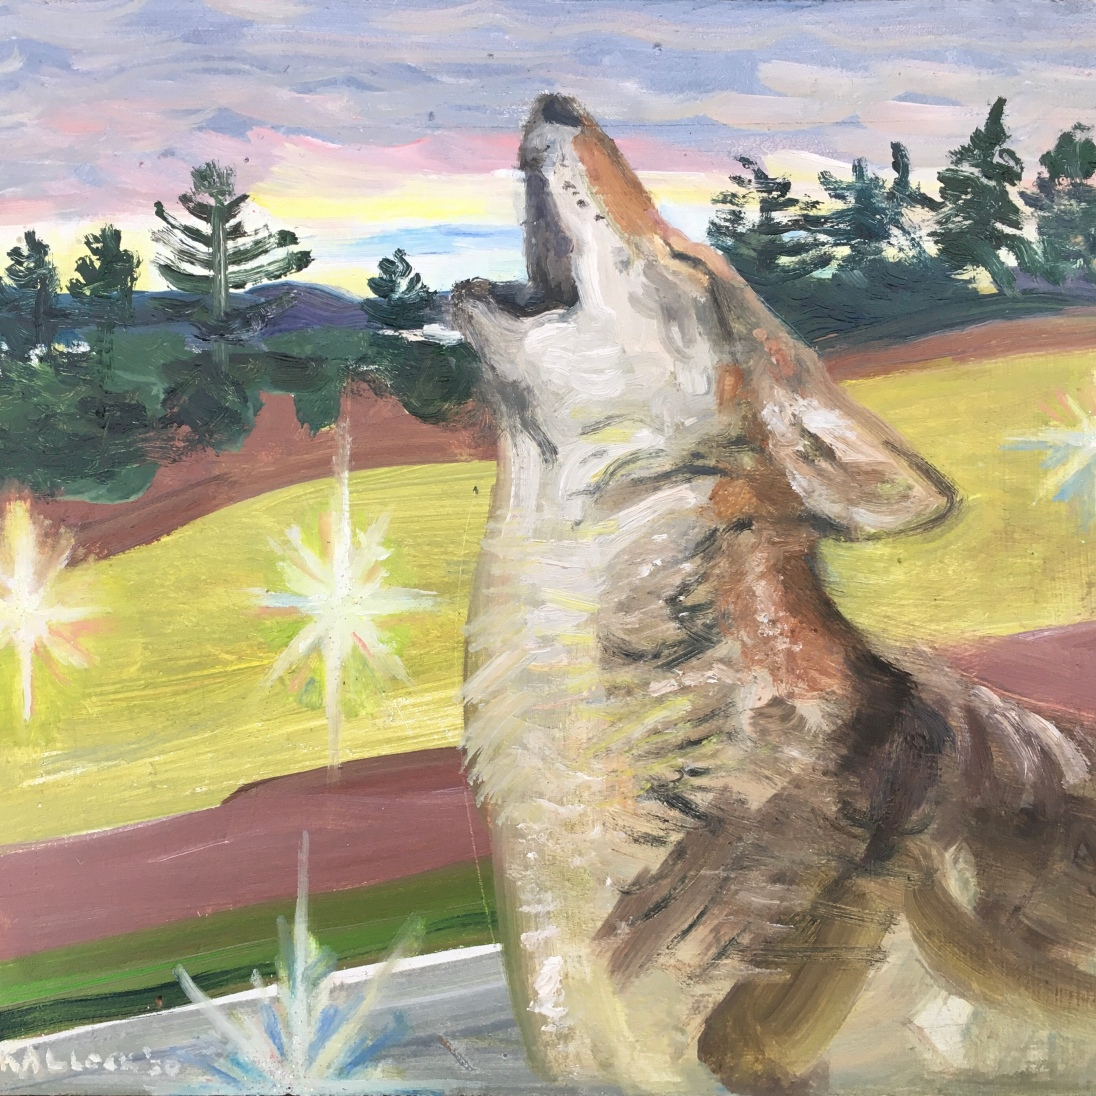 Coyote on the Land Between the Two Rivers: Stillaguamish and Skagit, oil and glitter on board, 6 by 7 in. Emilia Kallock, 2020